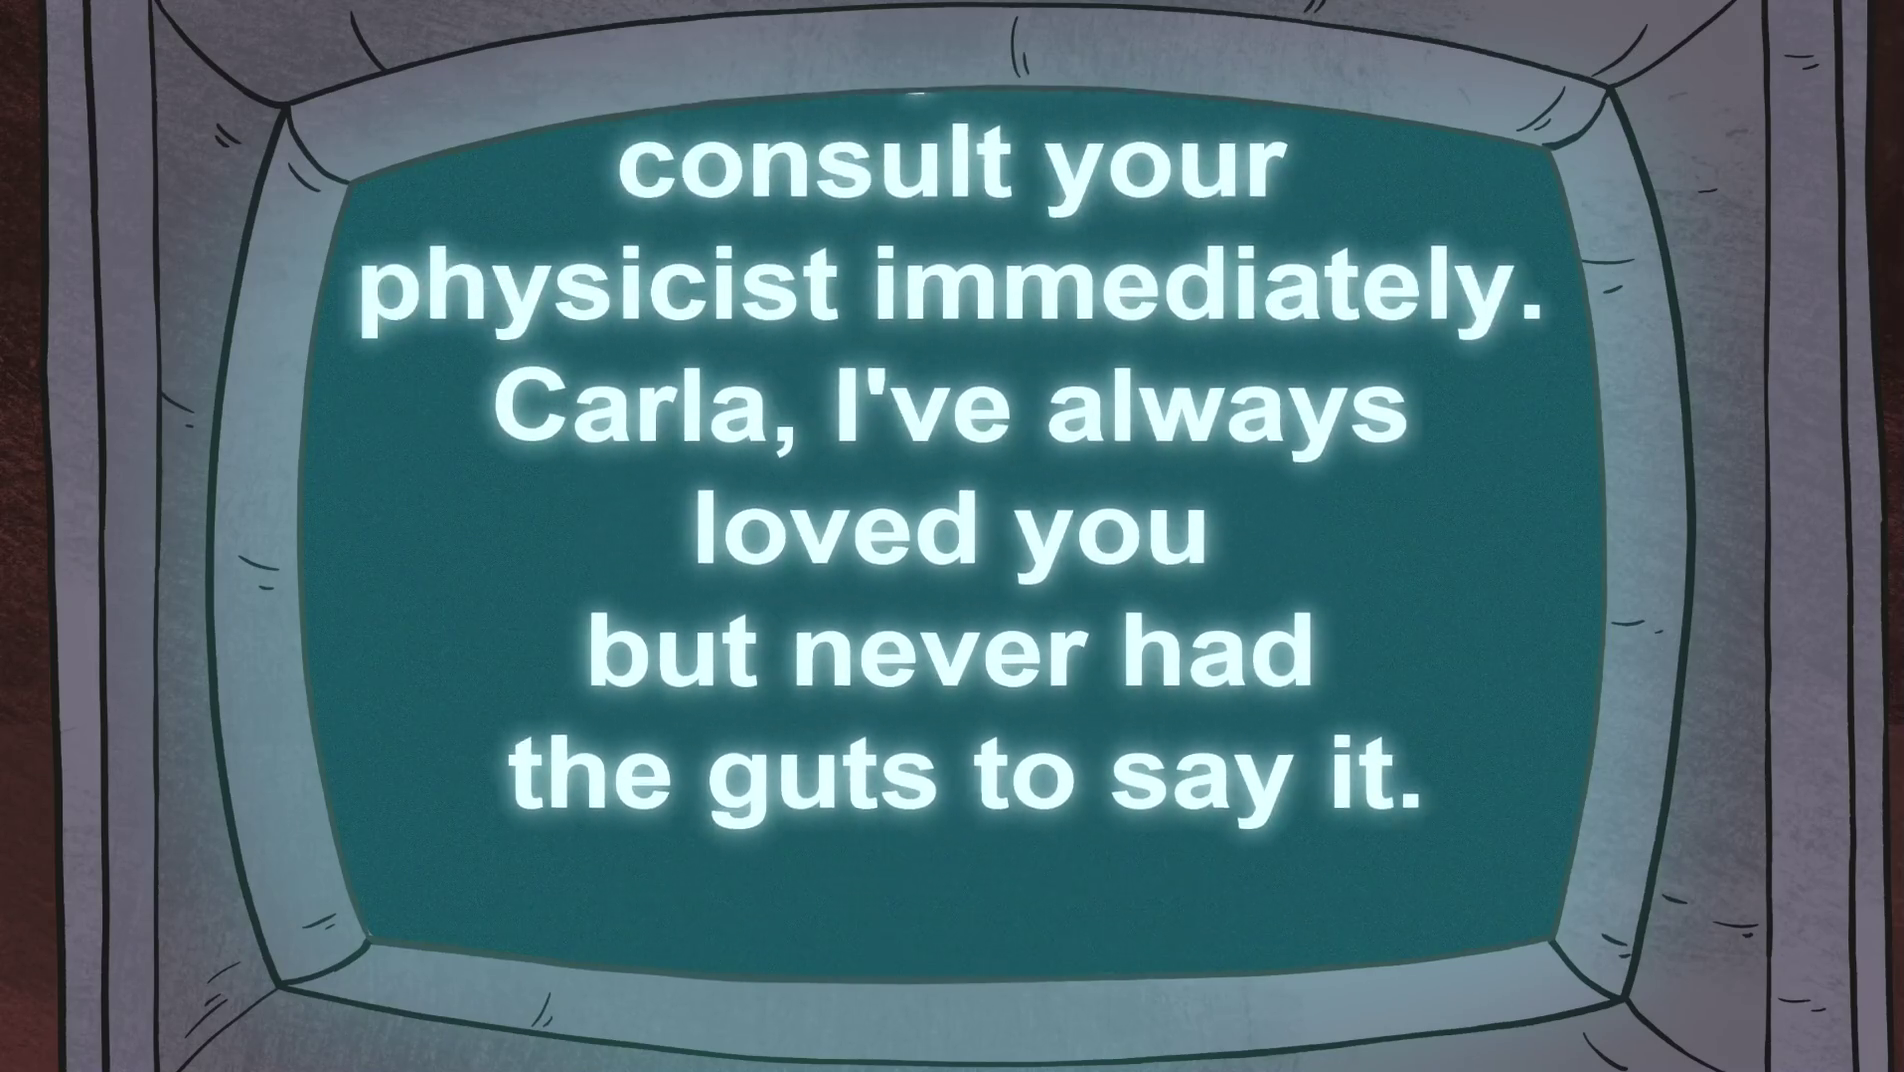 http://images.wikia.com/gravityfalls/images/0/04/S1e4_carla.png